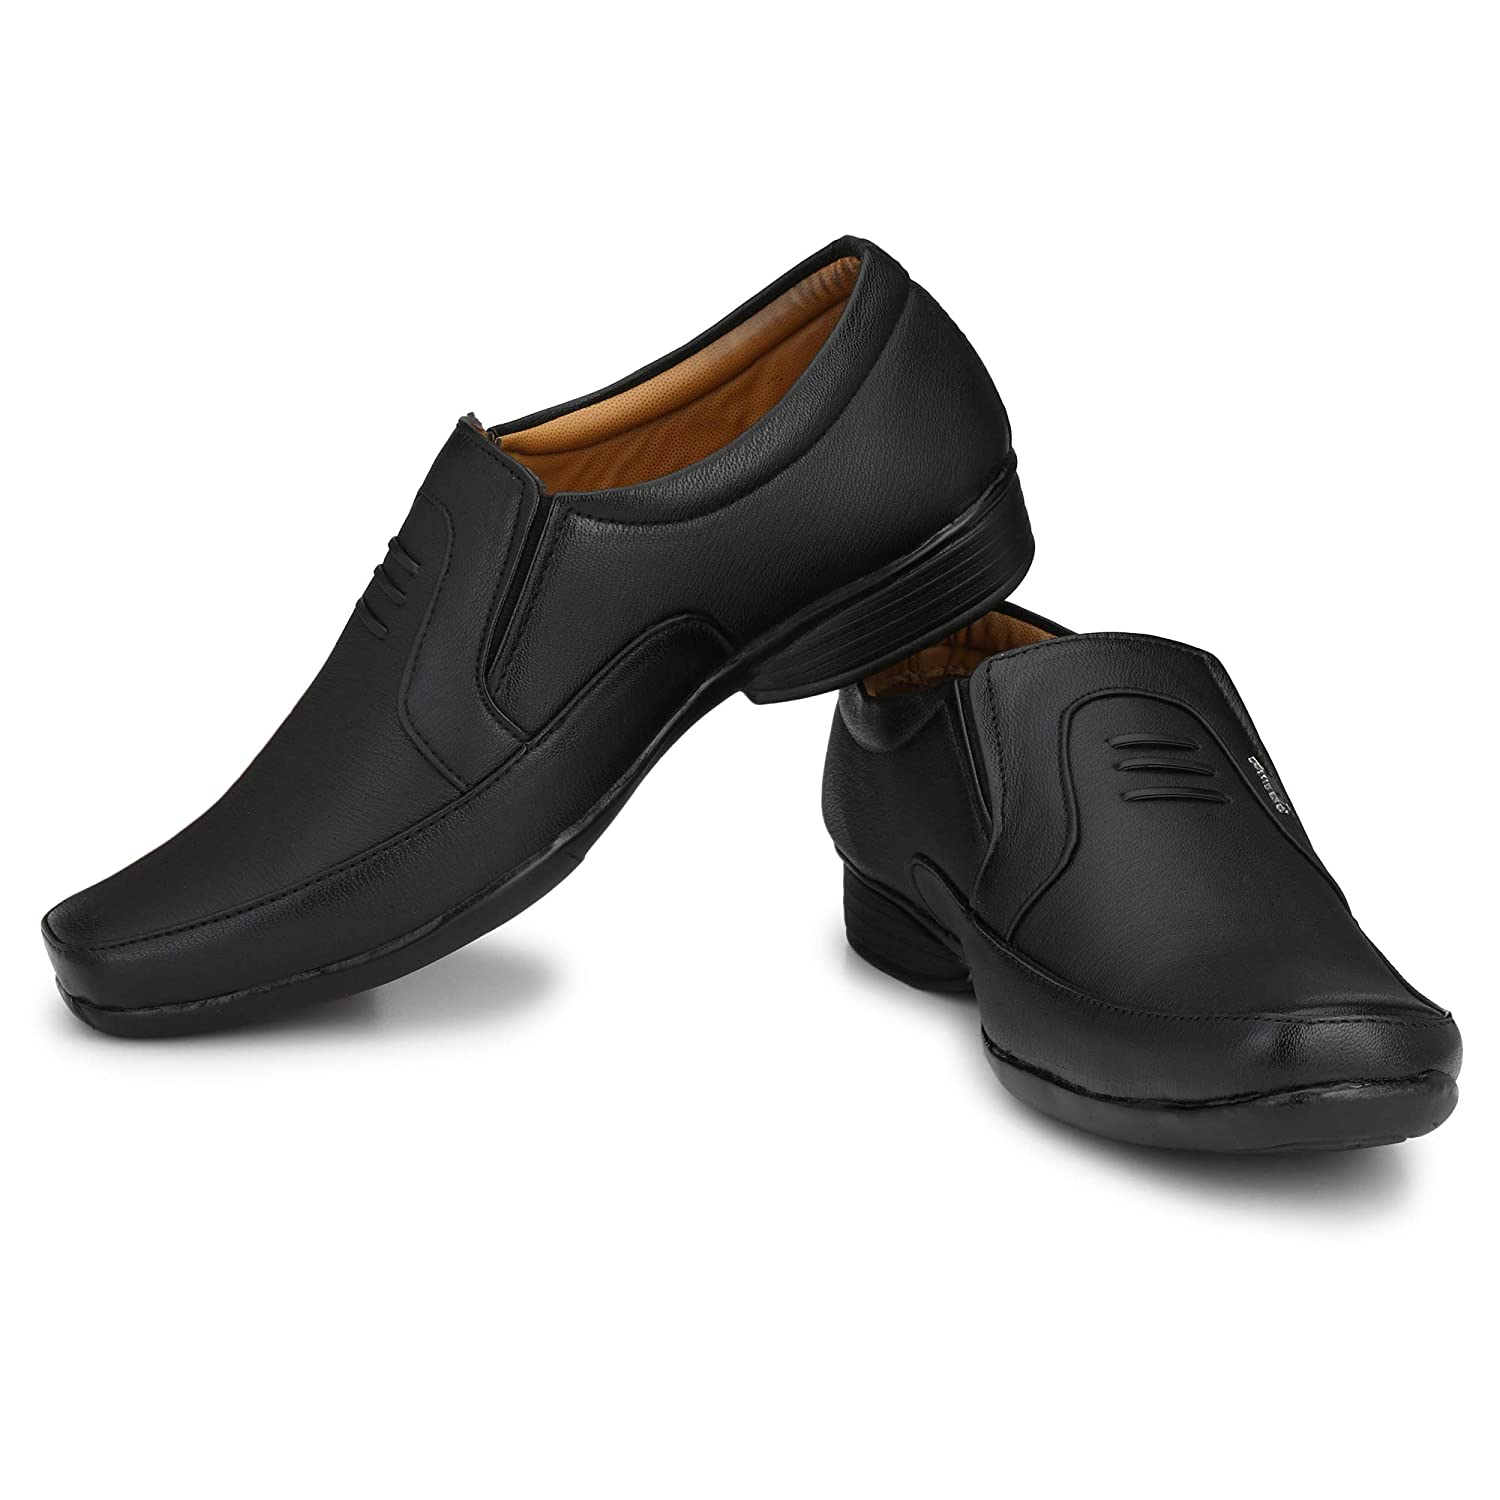 Buy Stylelure Men's Formal Shoes at Amazon.in